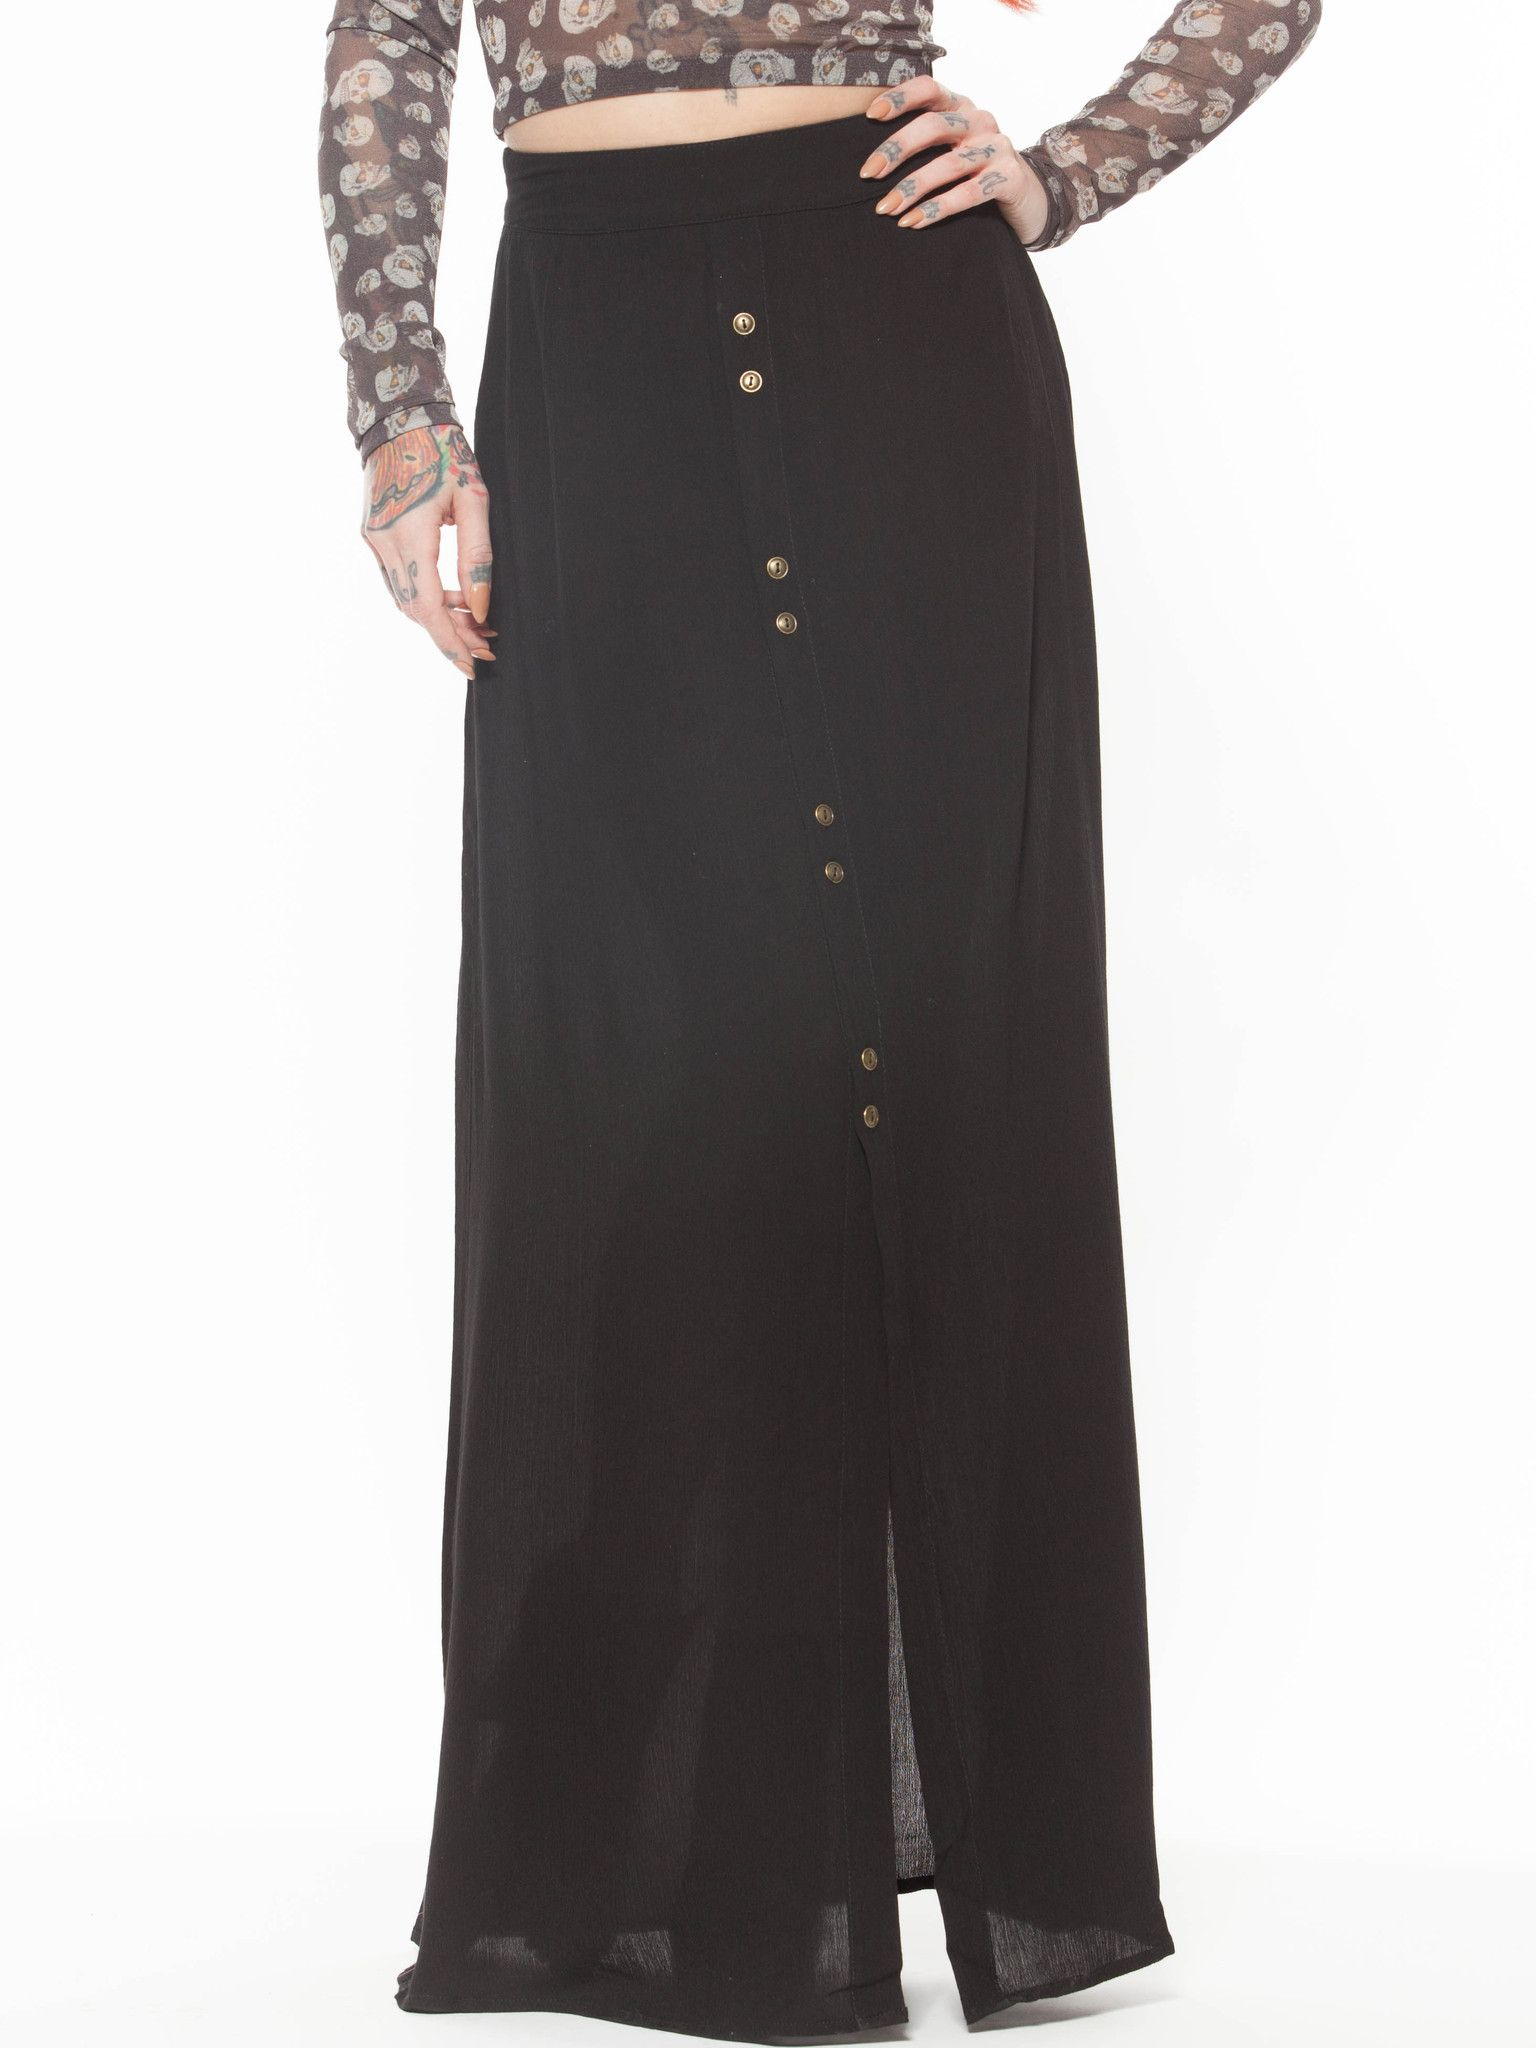 Merlina Maxi Skirt from Grit N Glory